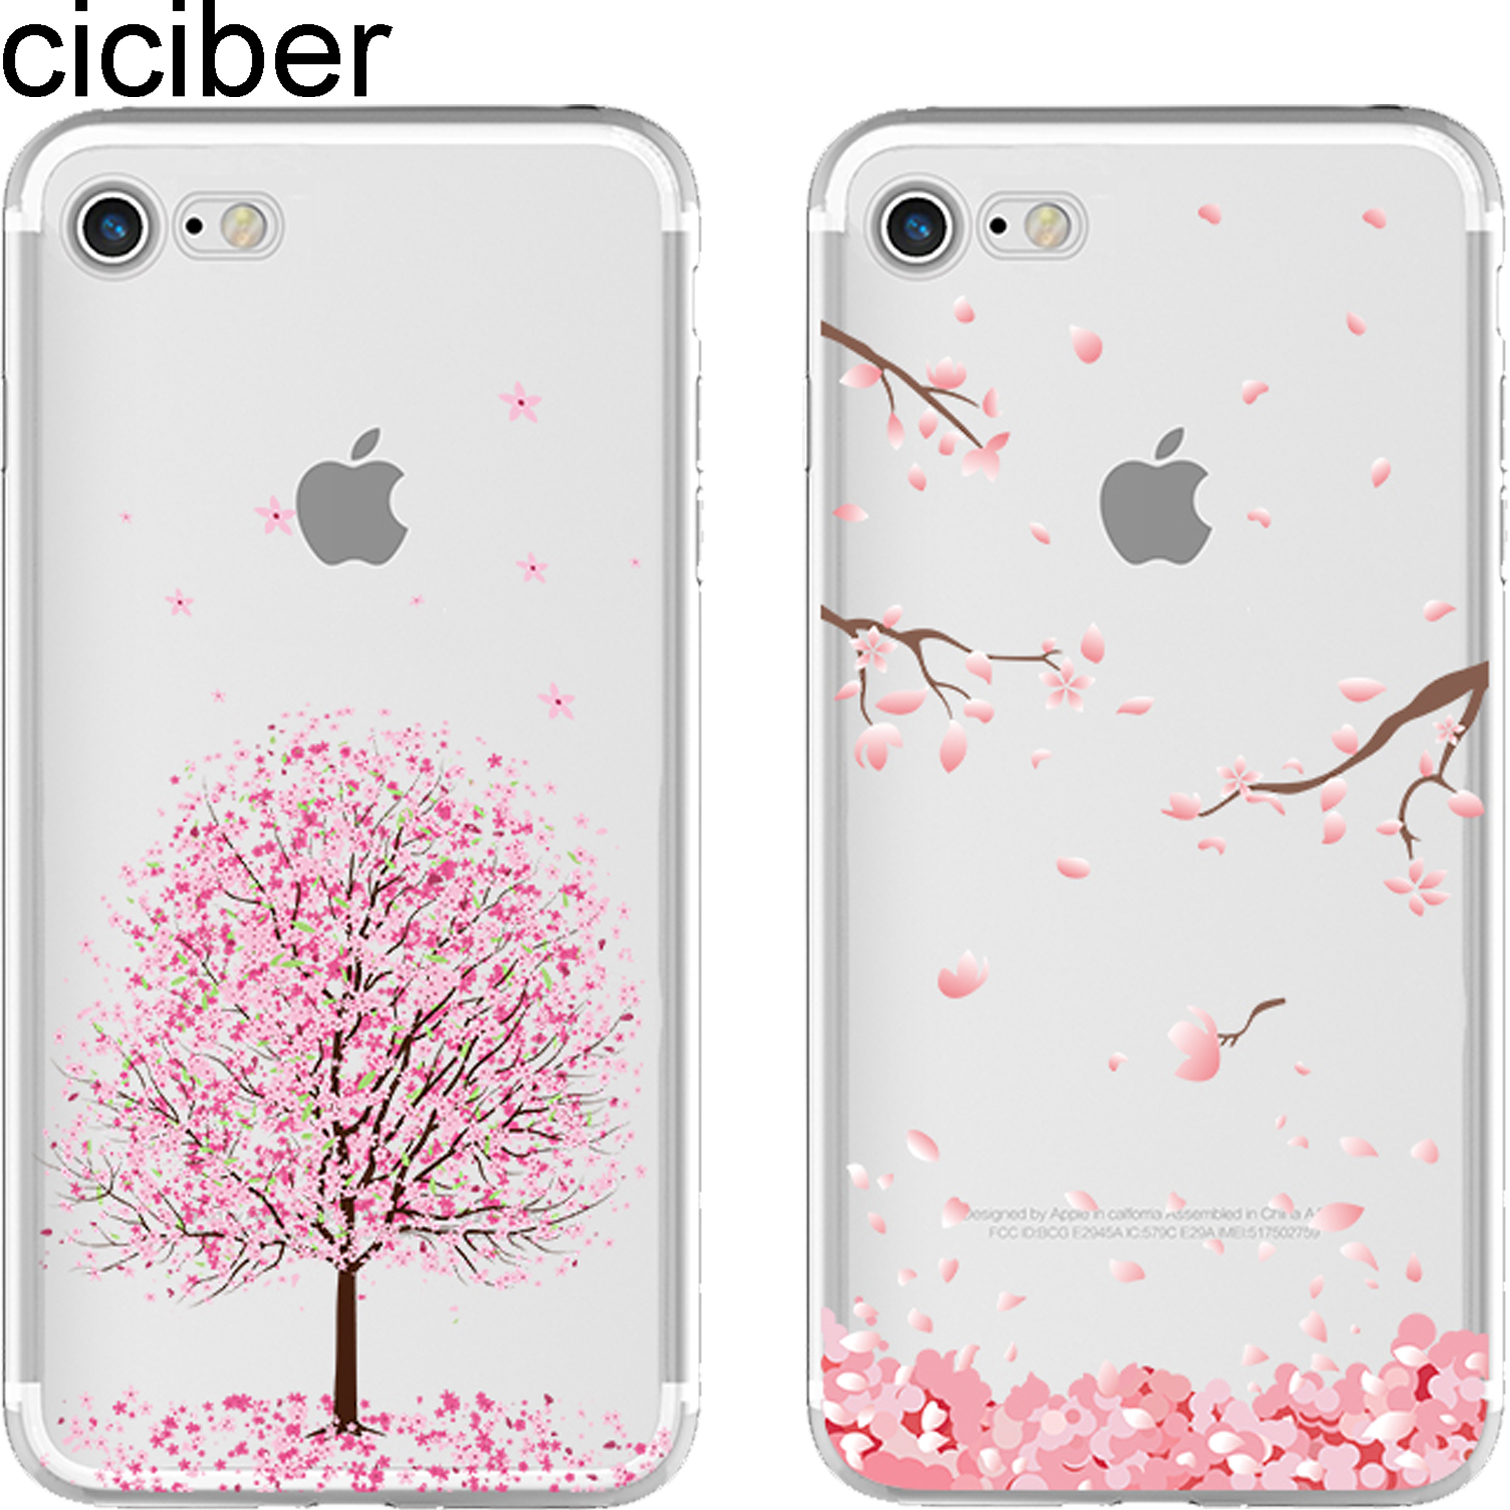 Cicler Romantic Sweet Cherry Blossom Cat Soft TPU Carcase pentru telefon pentru iPhone 11 Pro Max 6 6S 7 8 Plus 5S SE X XR XS Max Funda